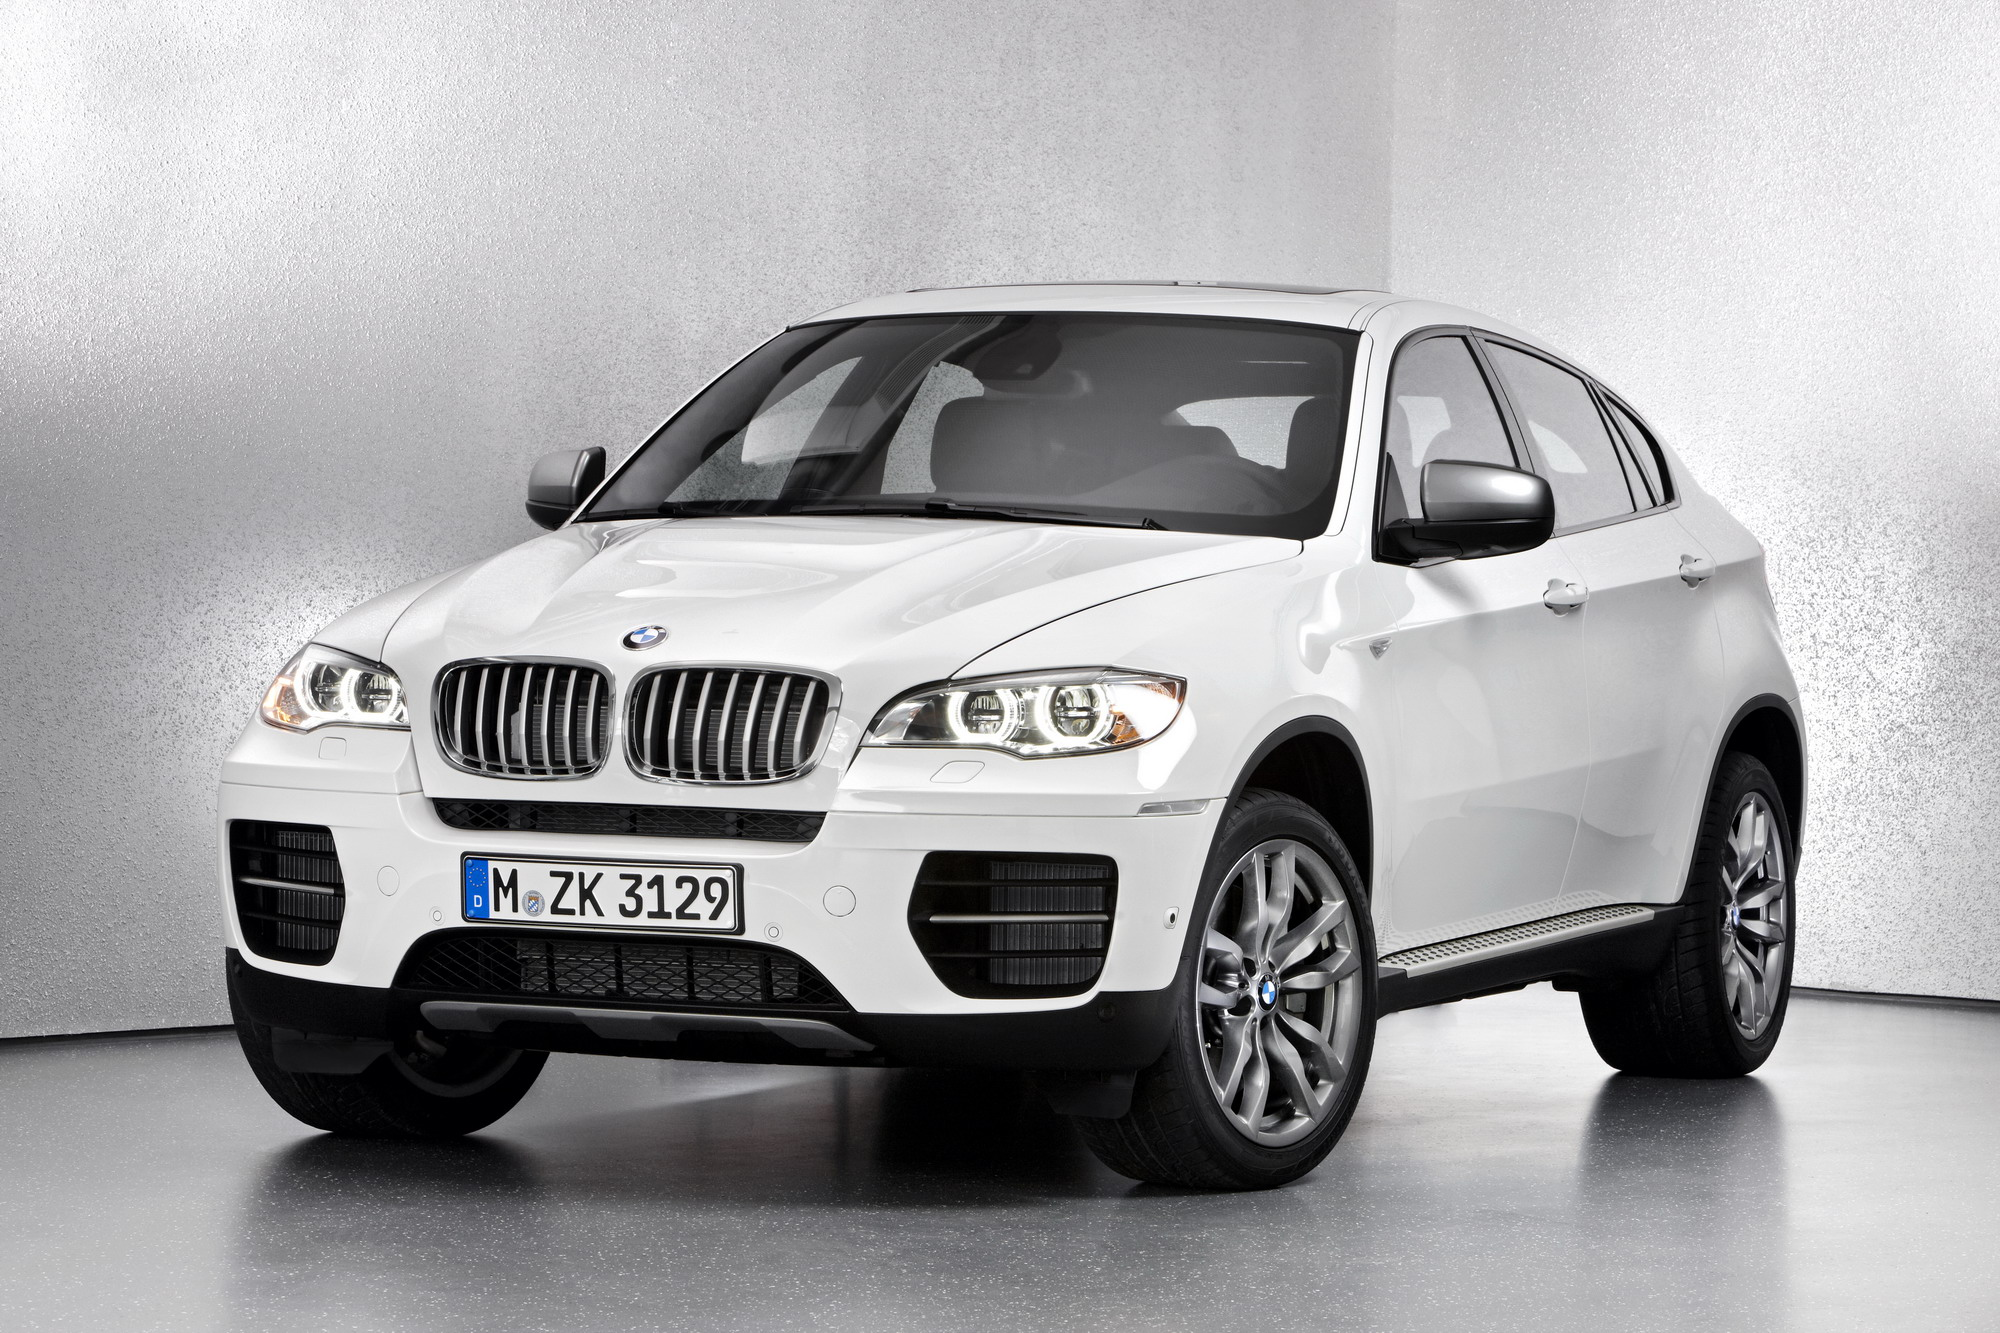 2013 Bmw X6 M50d Top Speed